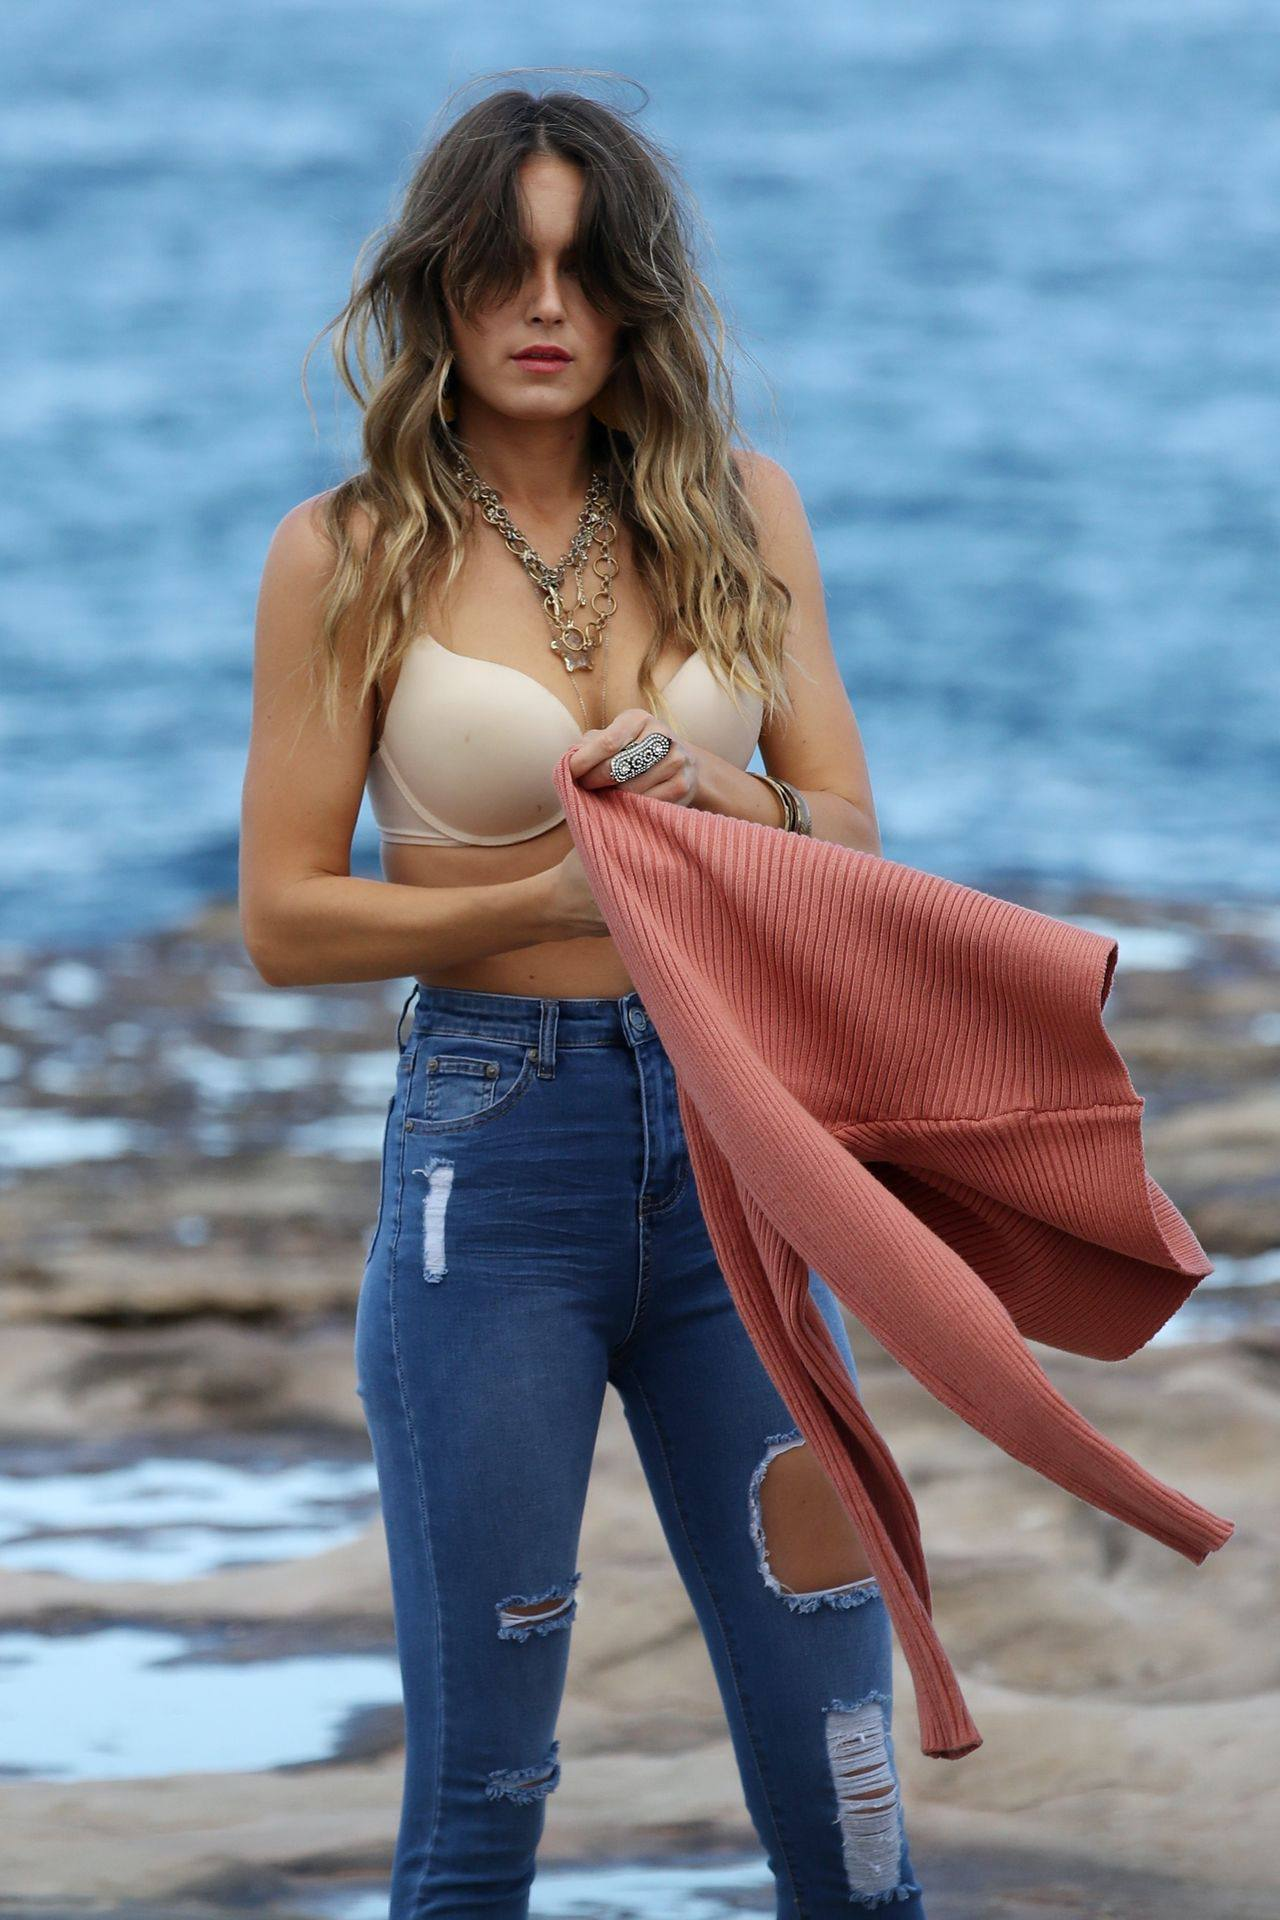 Stephanie Claire Smith – Sexy Big Camel Toe In Panties At Photoshoot In Sydney 0022